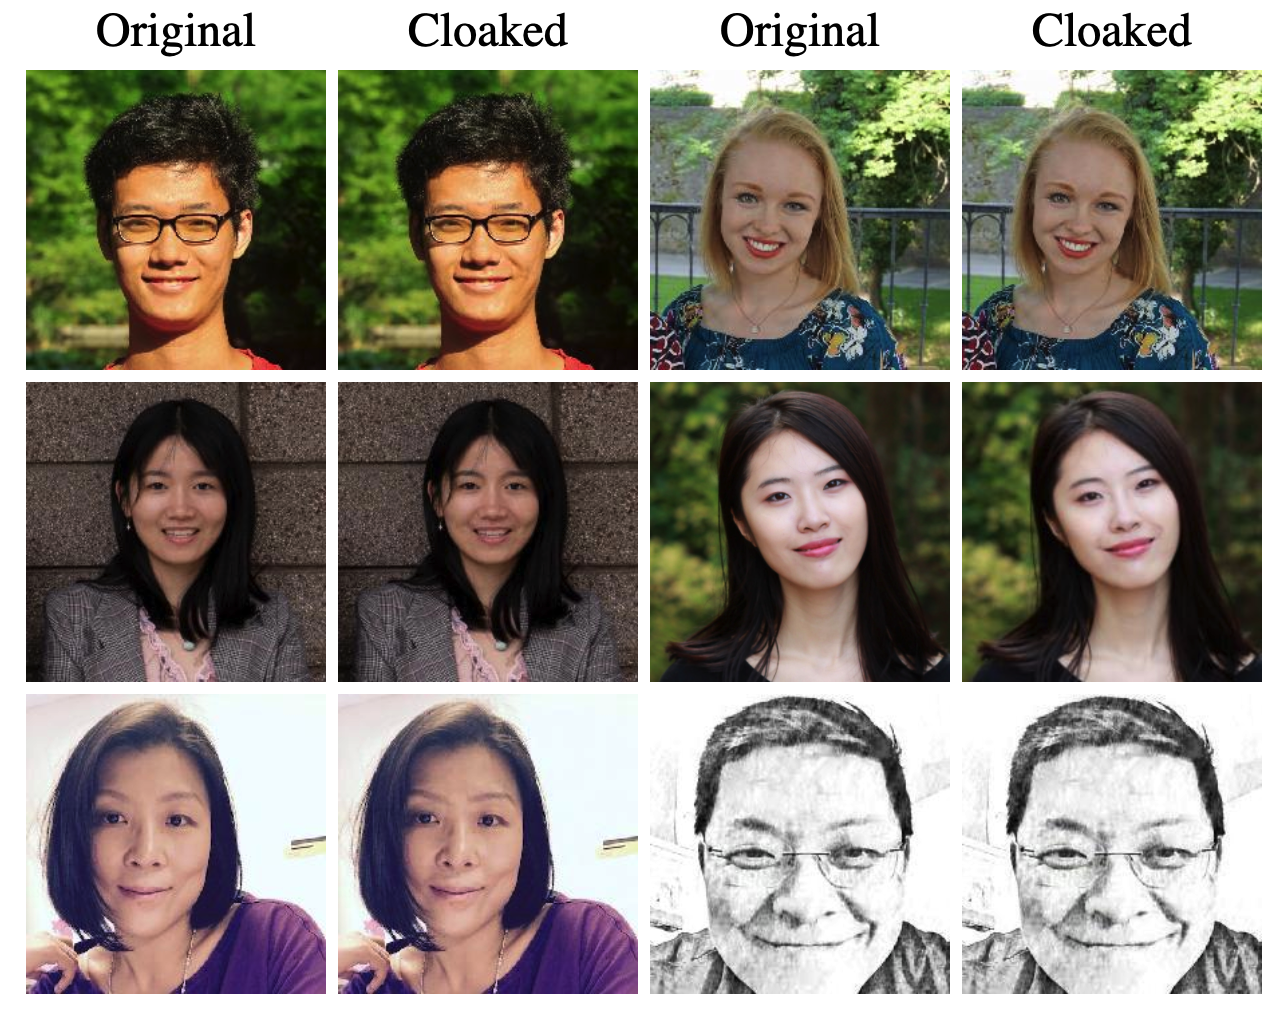 6 people's images have been altered with Fawkes but the changes aren't recognizable